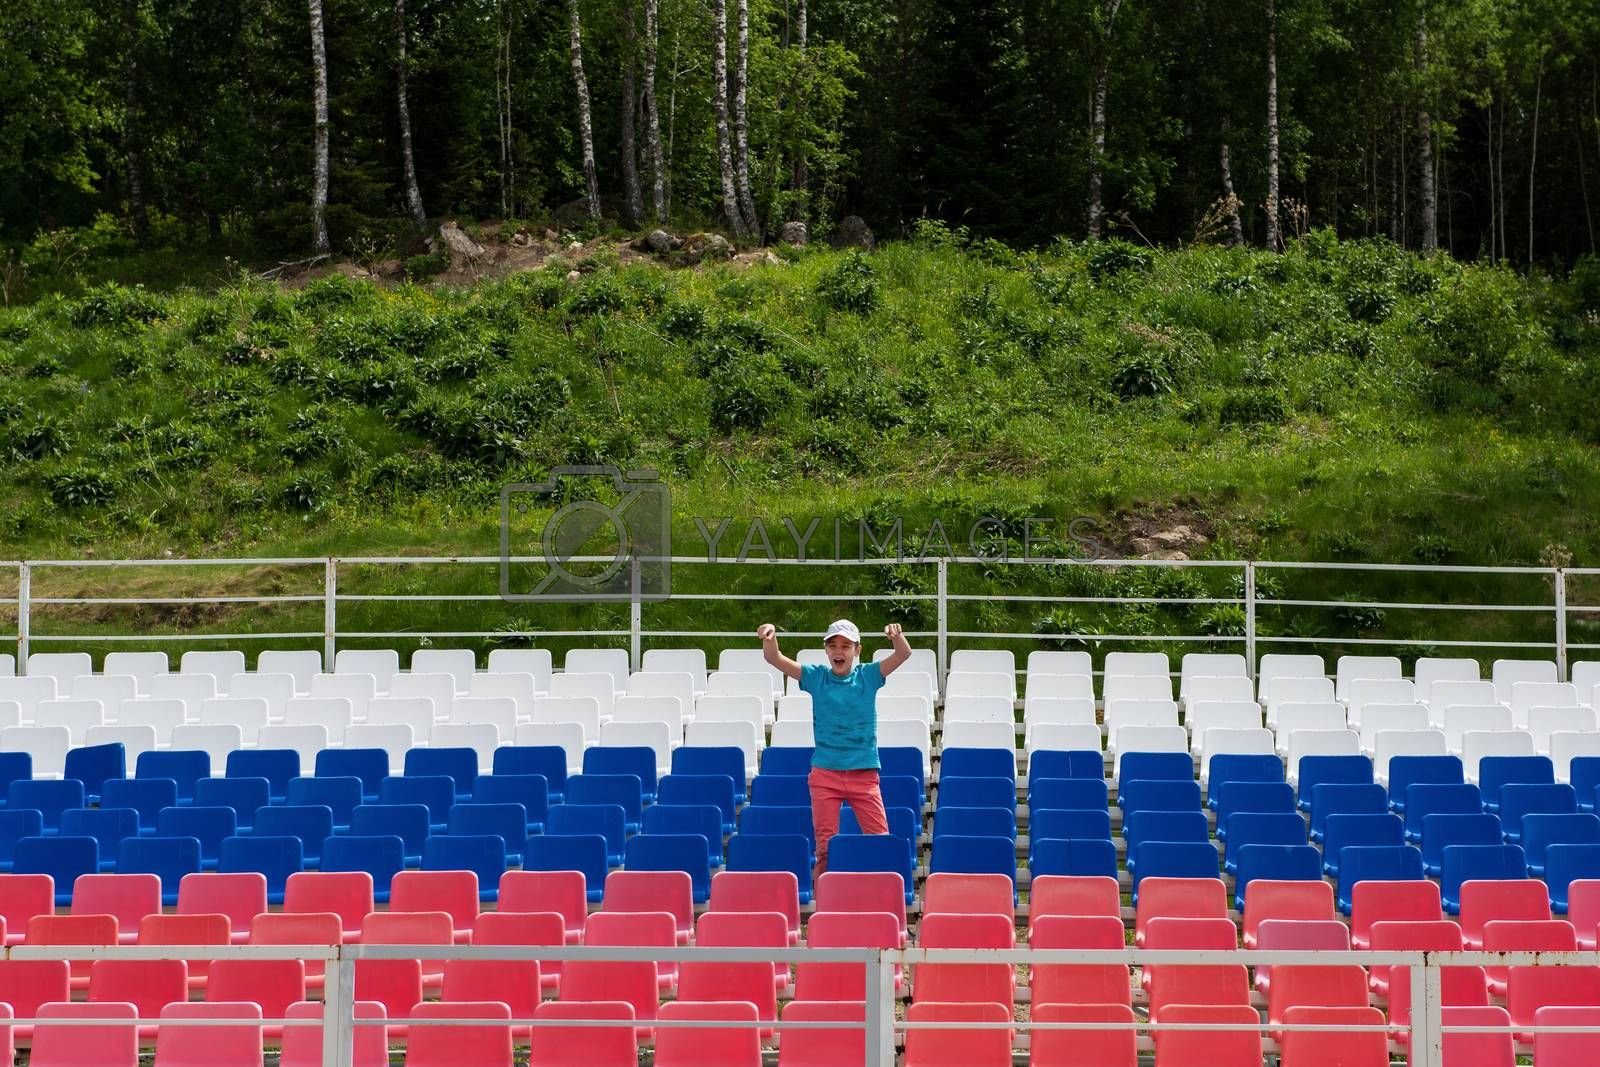 Lonely boy on the empty stadium outdoor. Empty tribune due to pandemic Covid-19. Concept of pandemic life , empty stadiums, distance from viewers, safety.